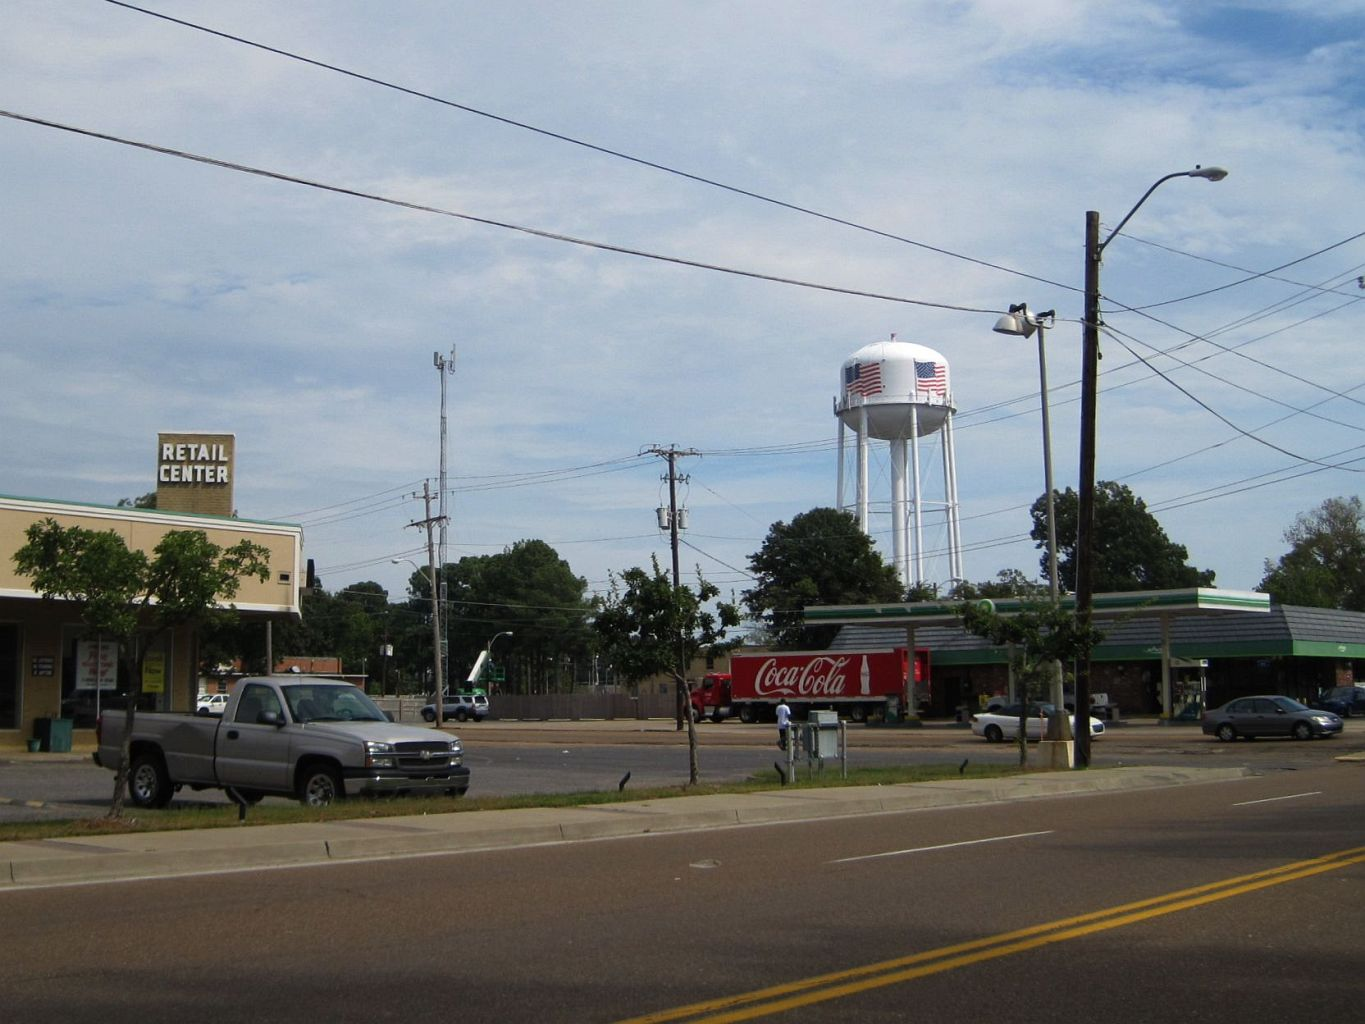 Millington real estate memphis suburb guide movoto for Small towns in tennessee near memphis